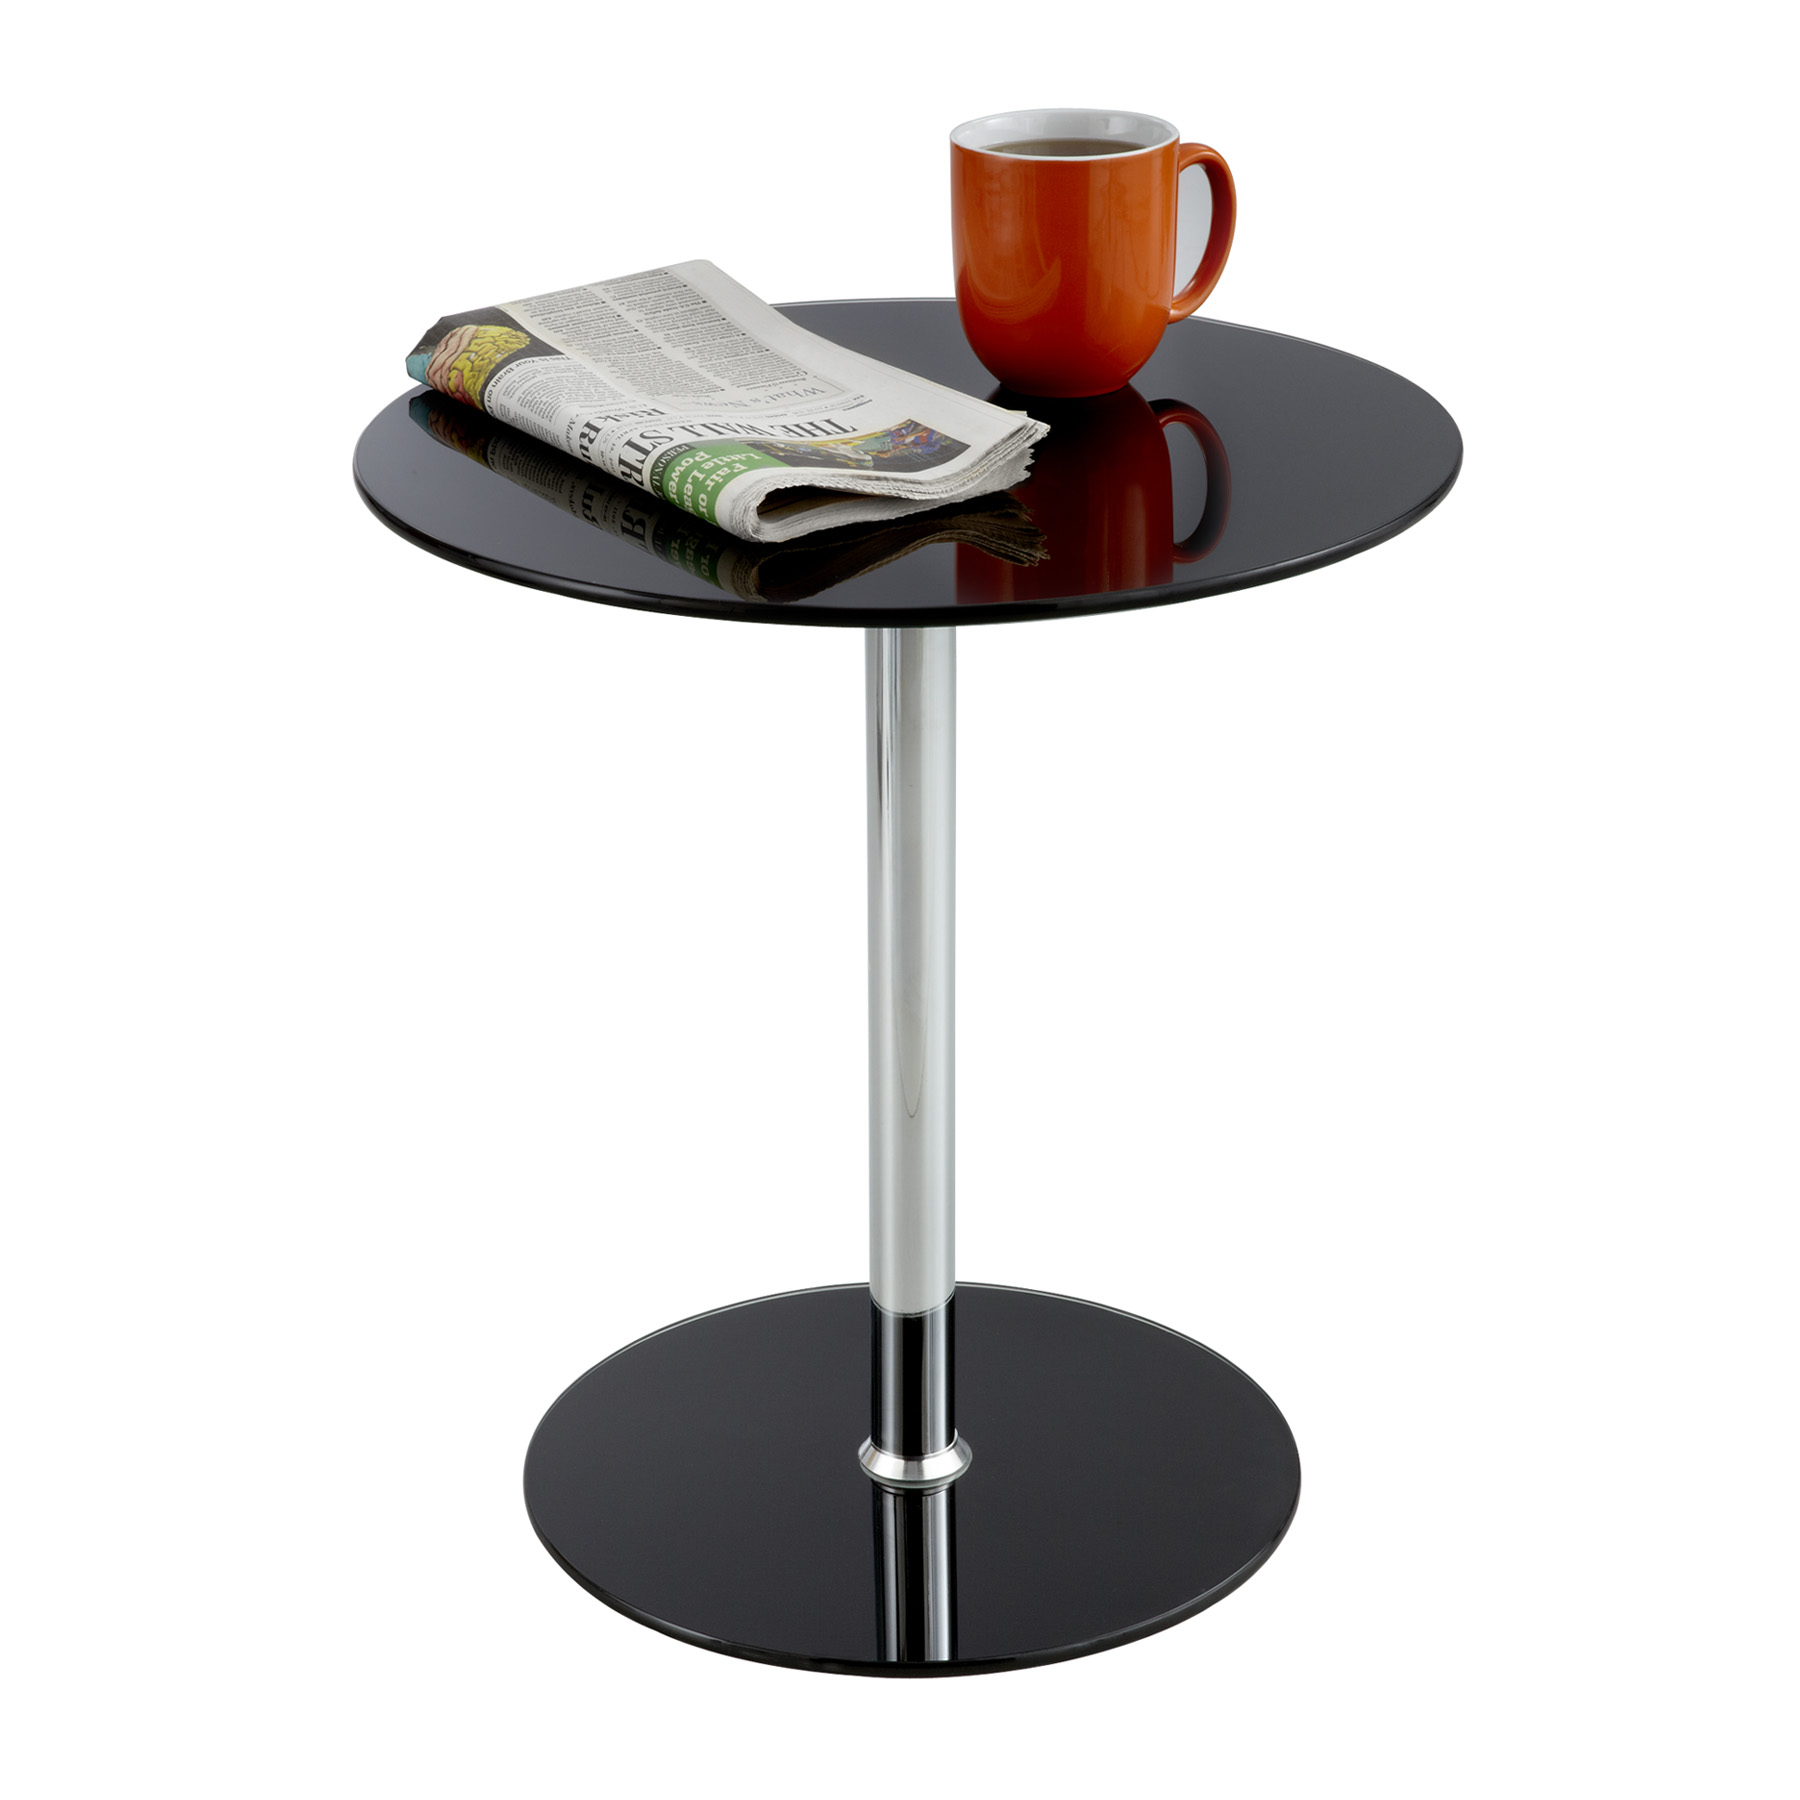 glass accent table safco products black hobby lobby decorations ashley furniture company small metal side coffee and matching tables diy base nautical bedroom orange lamp pretty